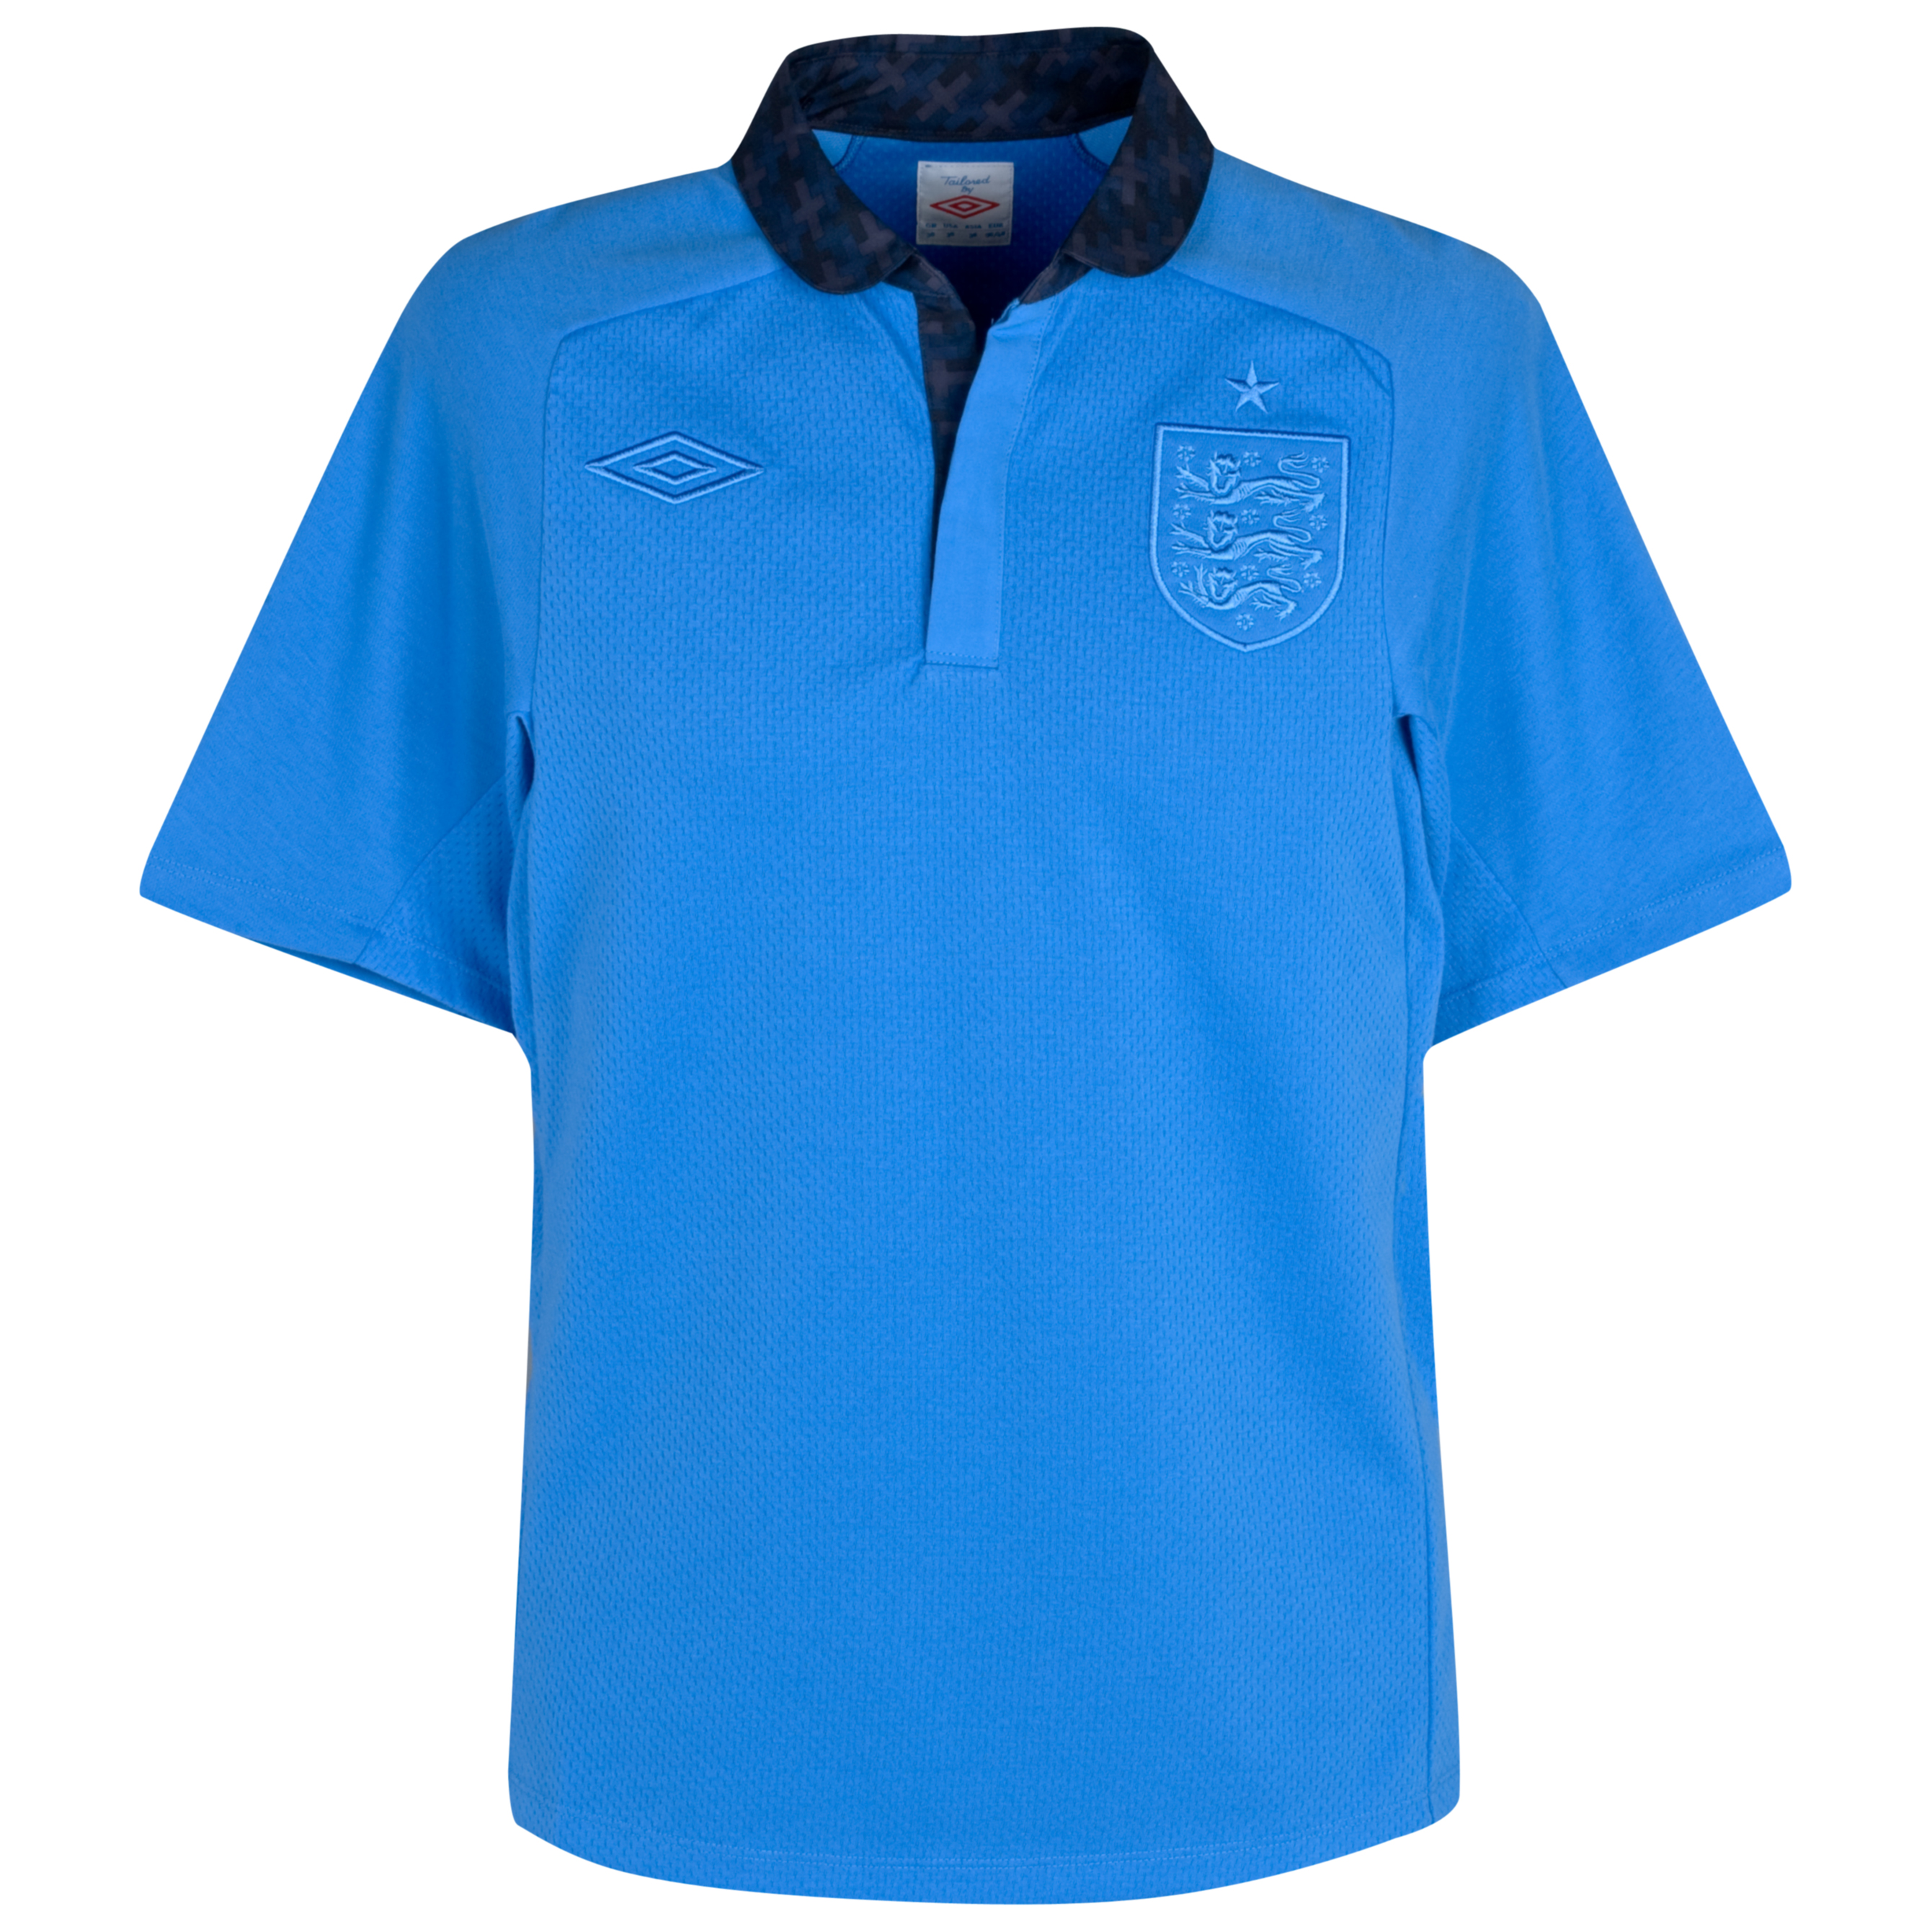 England Away 2011/12 Special Edition Shirt - Regatta